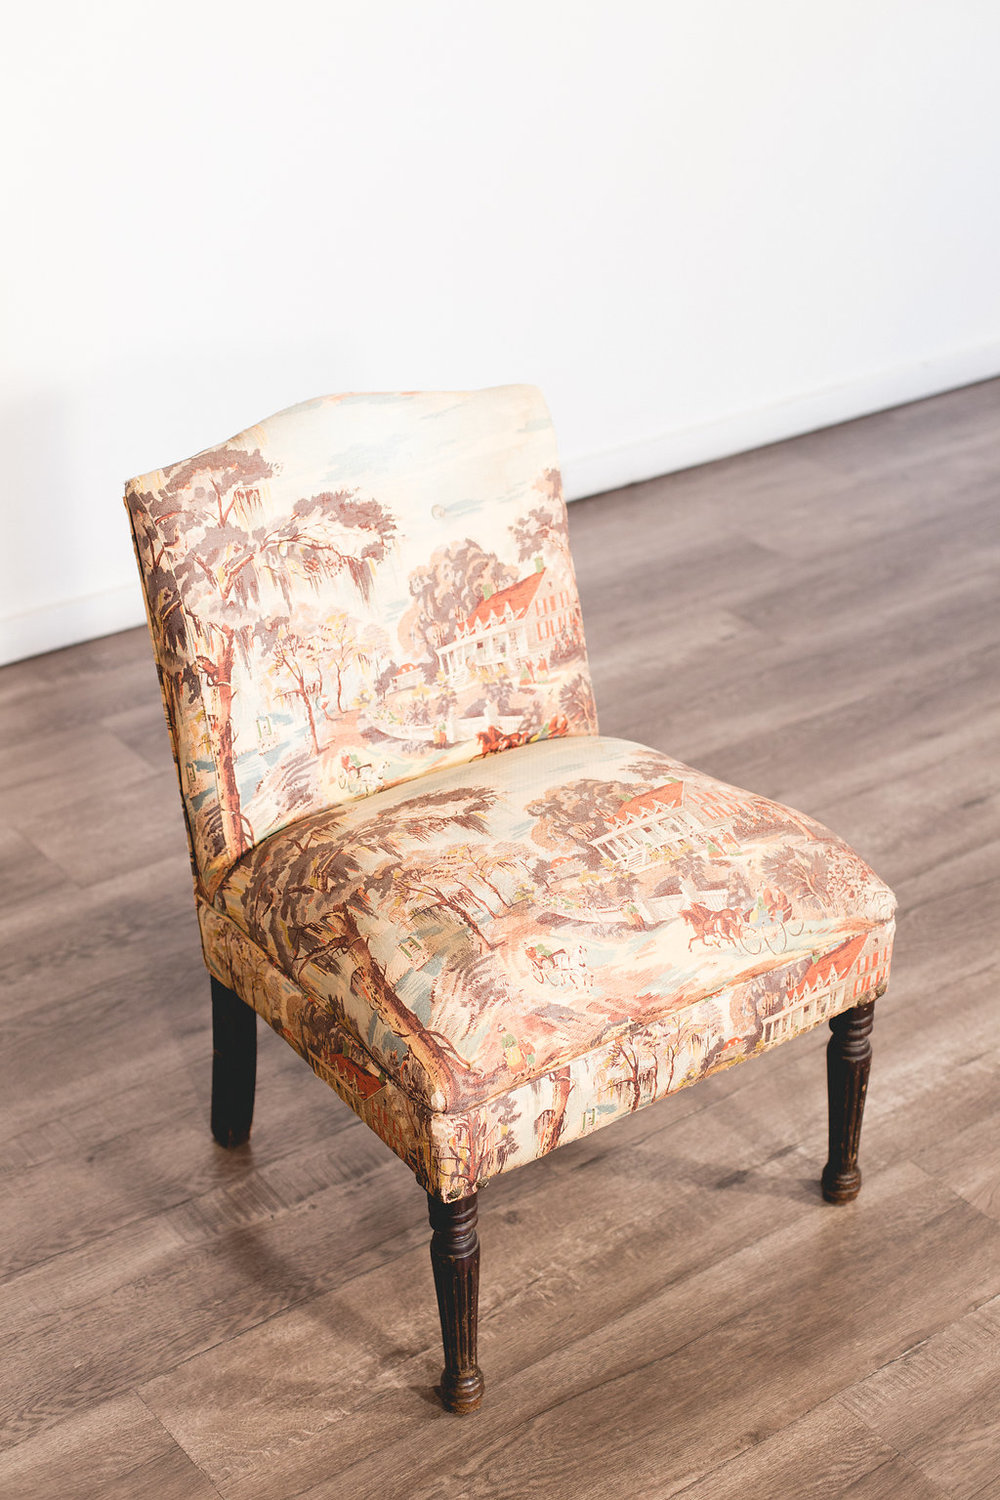 Vintage Toile Upholstered Chair Quantity: 1 Price: $75